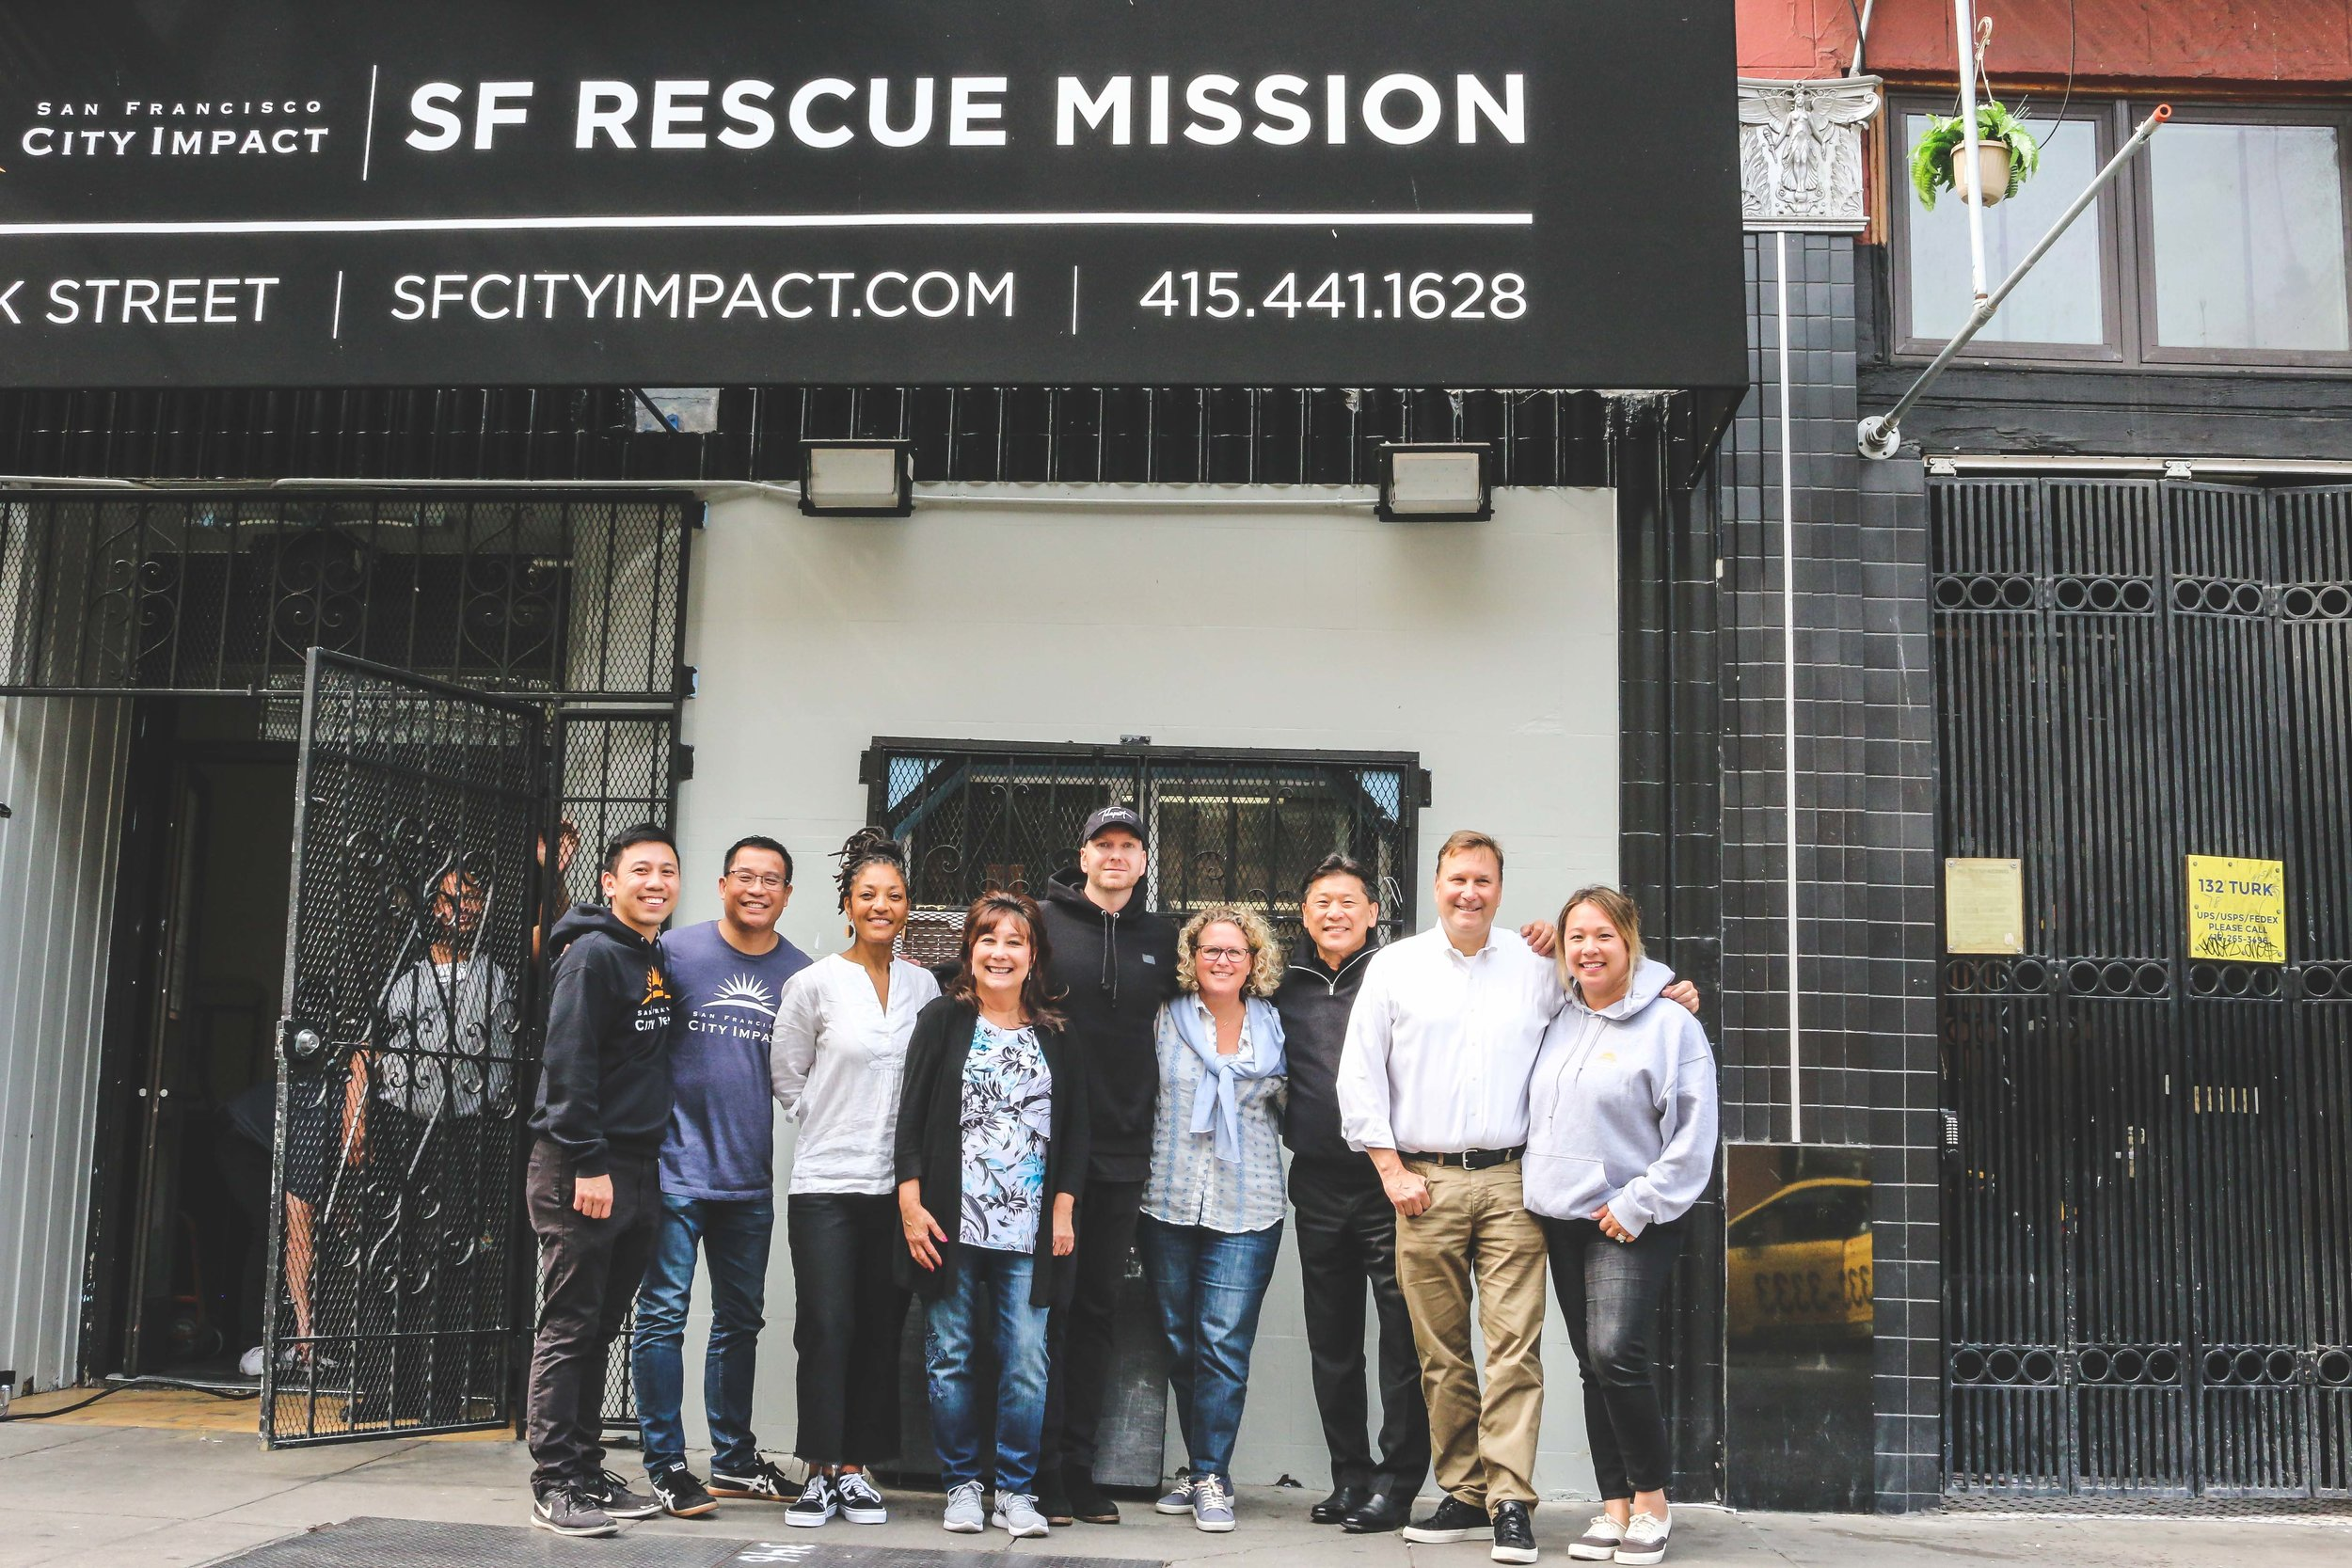 City Impact, Sackcloth & Ashes, and the Cost Plus World Market Team